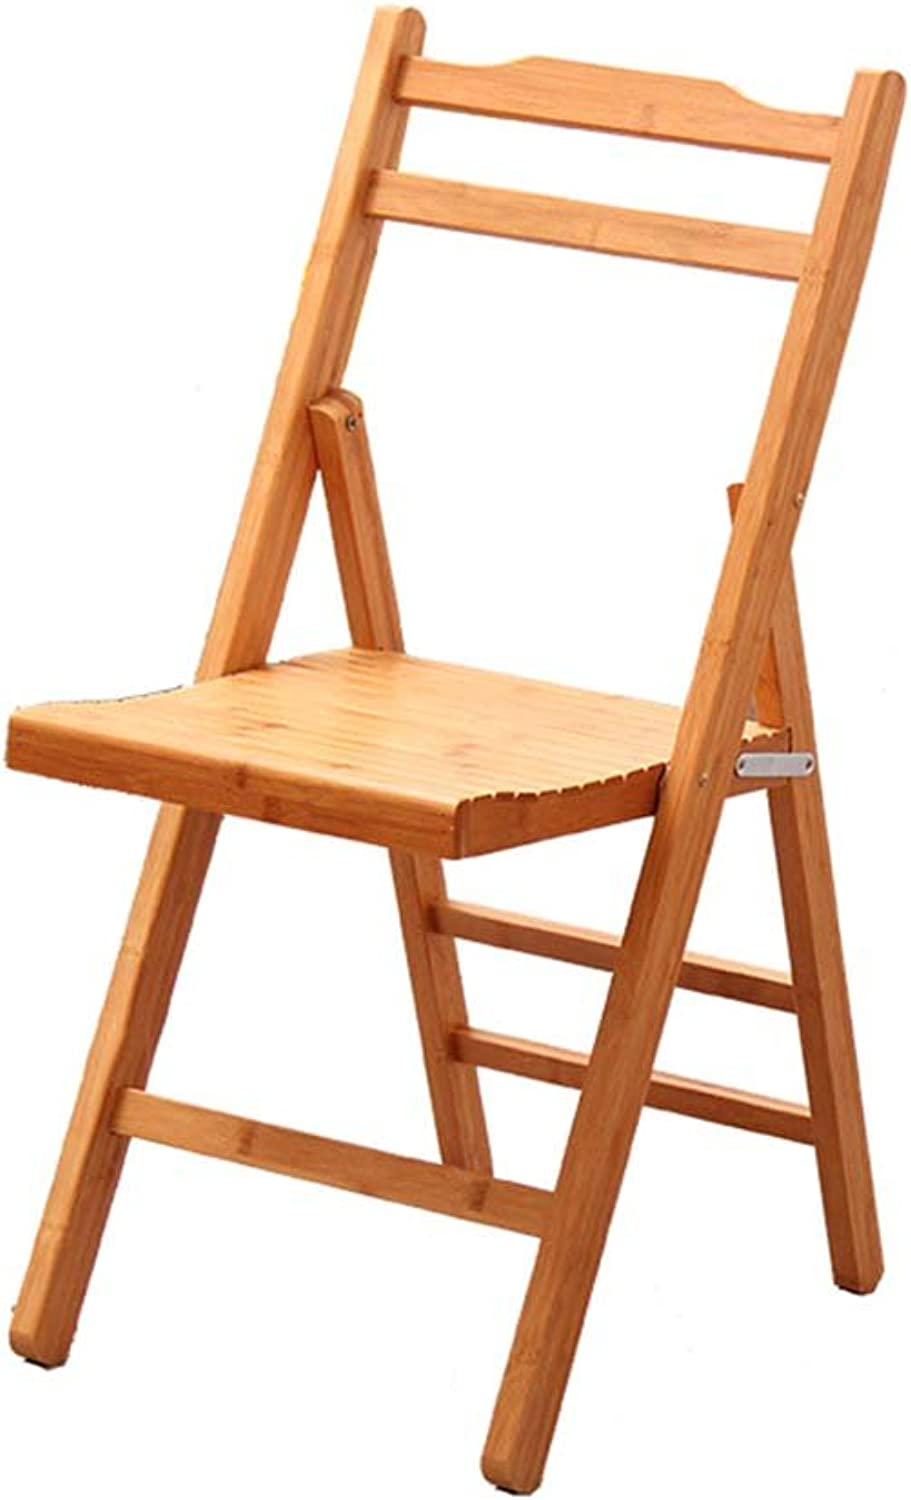 ZEMIN Chairs Seat Stool Ladder Table Foldable Wooden Backrest Bamboo Padded Multifunction, Wood color, 2 (Size   32x35x54CM)